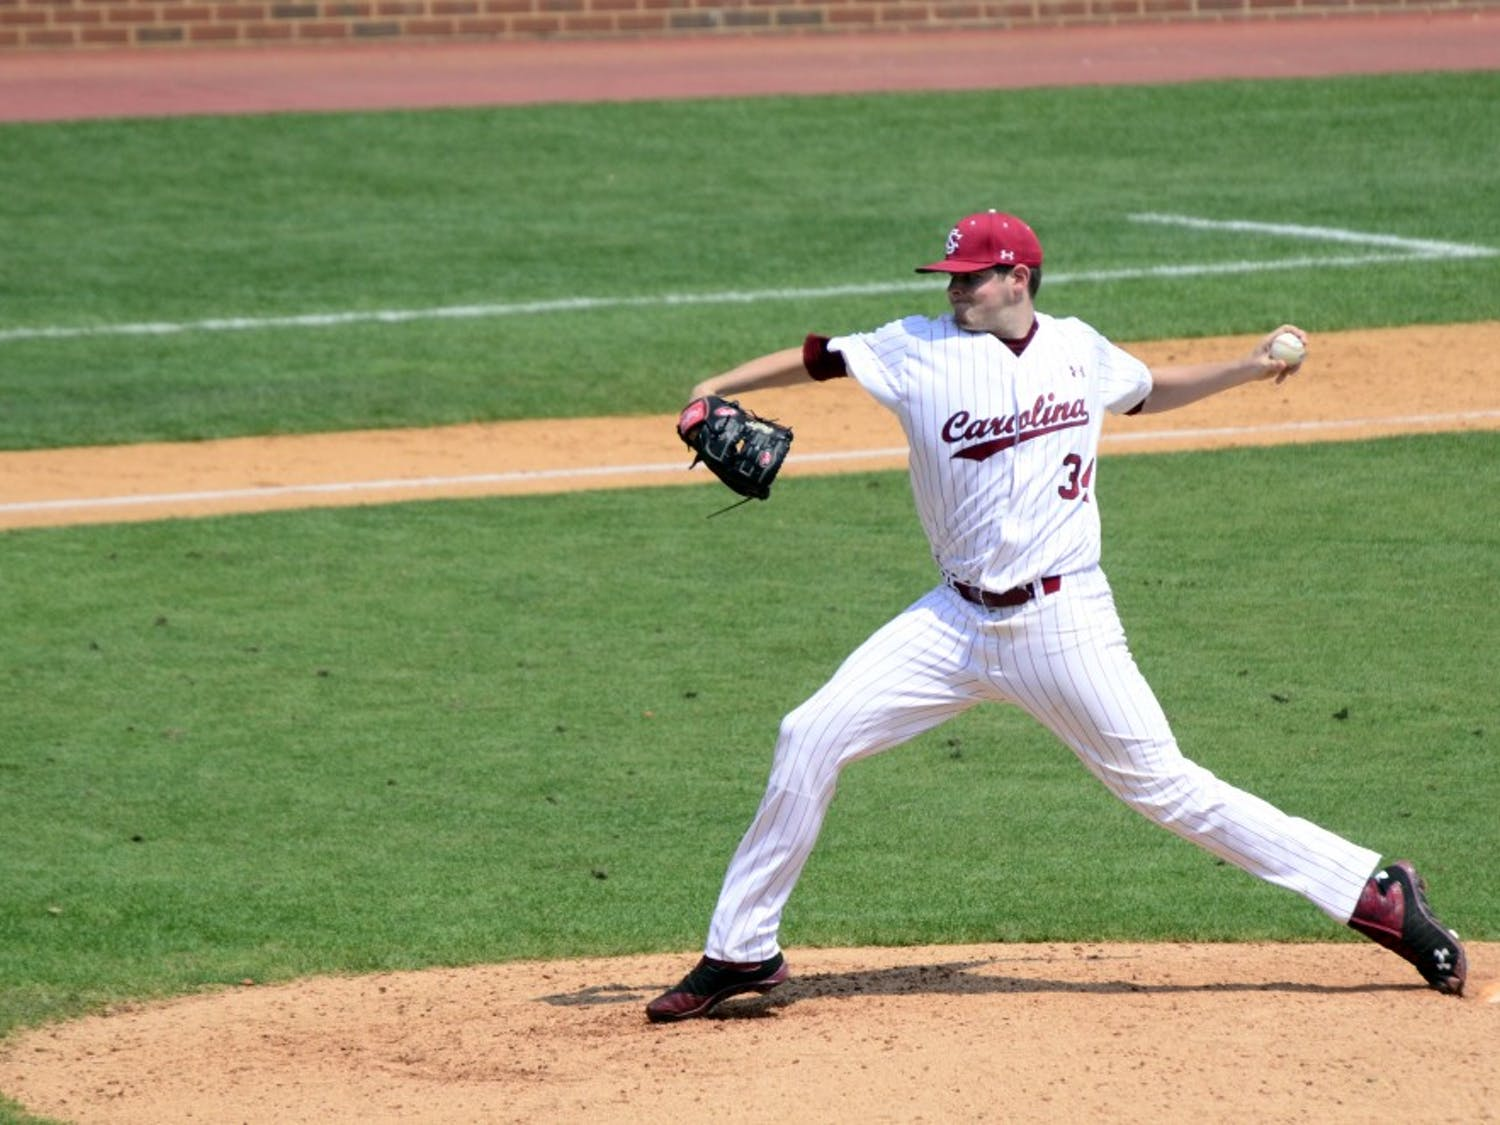 Pitcher Jason Montgomery led the Gamecocks to a victory in their second game against UNC.